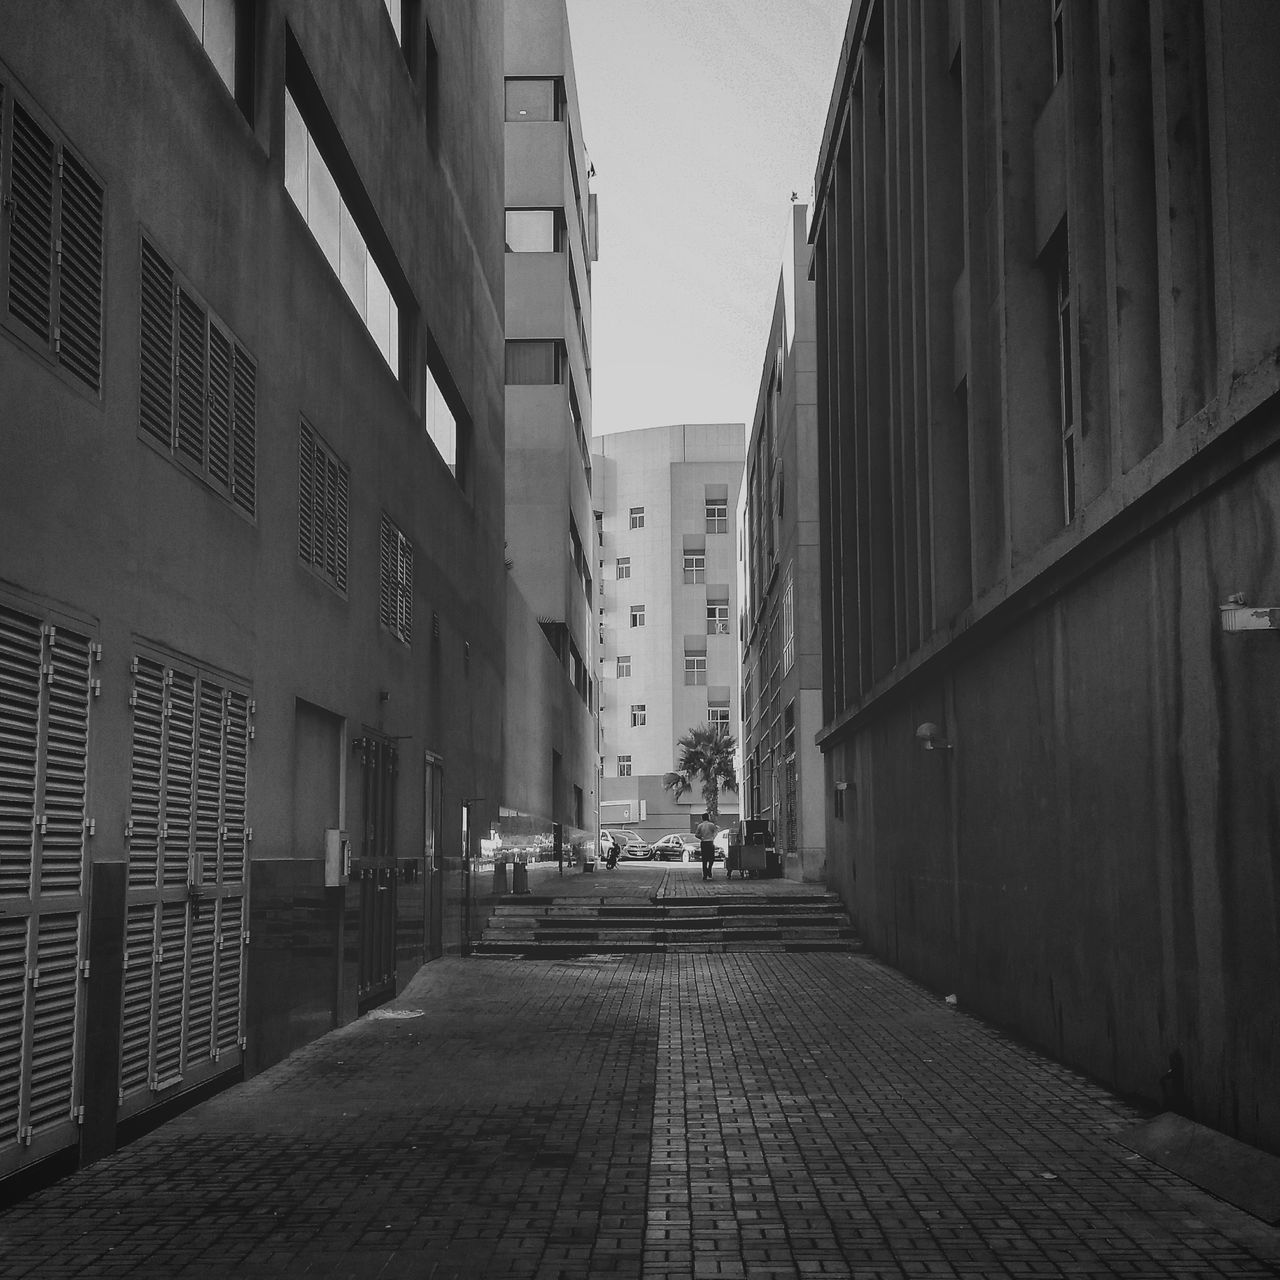 building exterior, architecture, built structure, street, city, the way forward, outdoors, day, no people, clear sky, sky